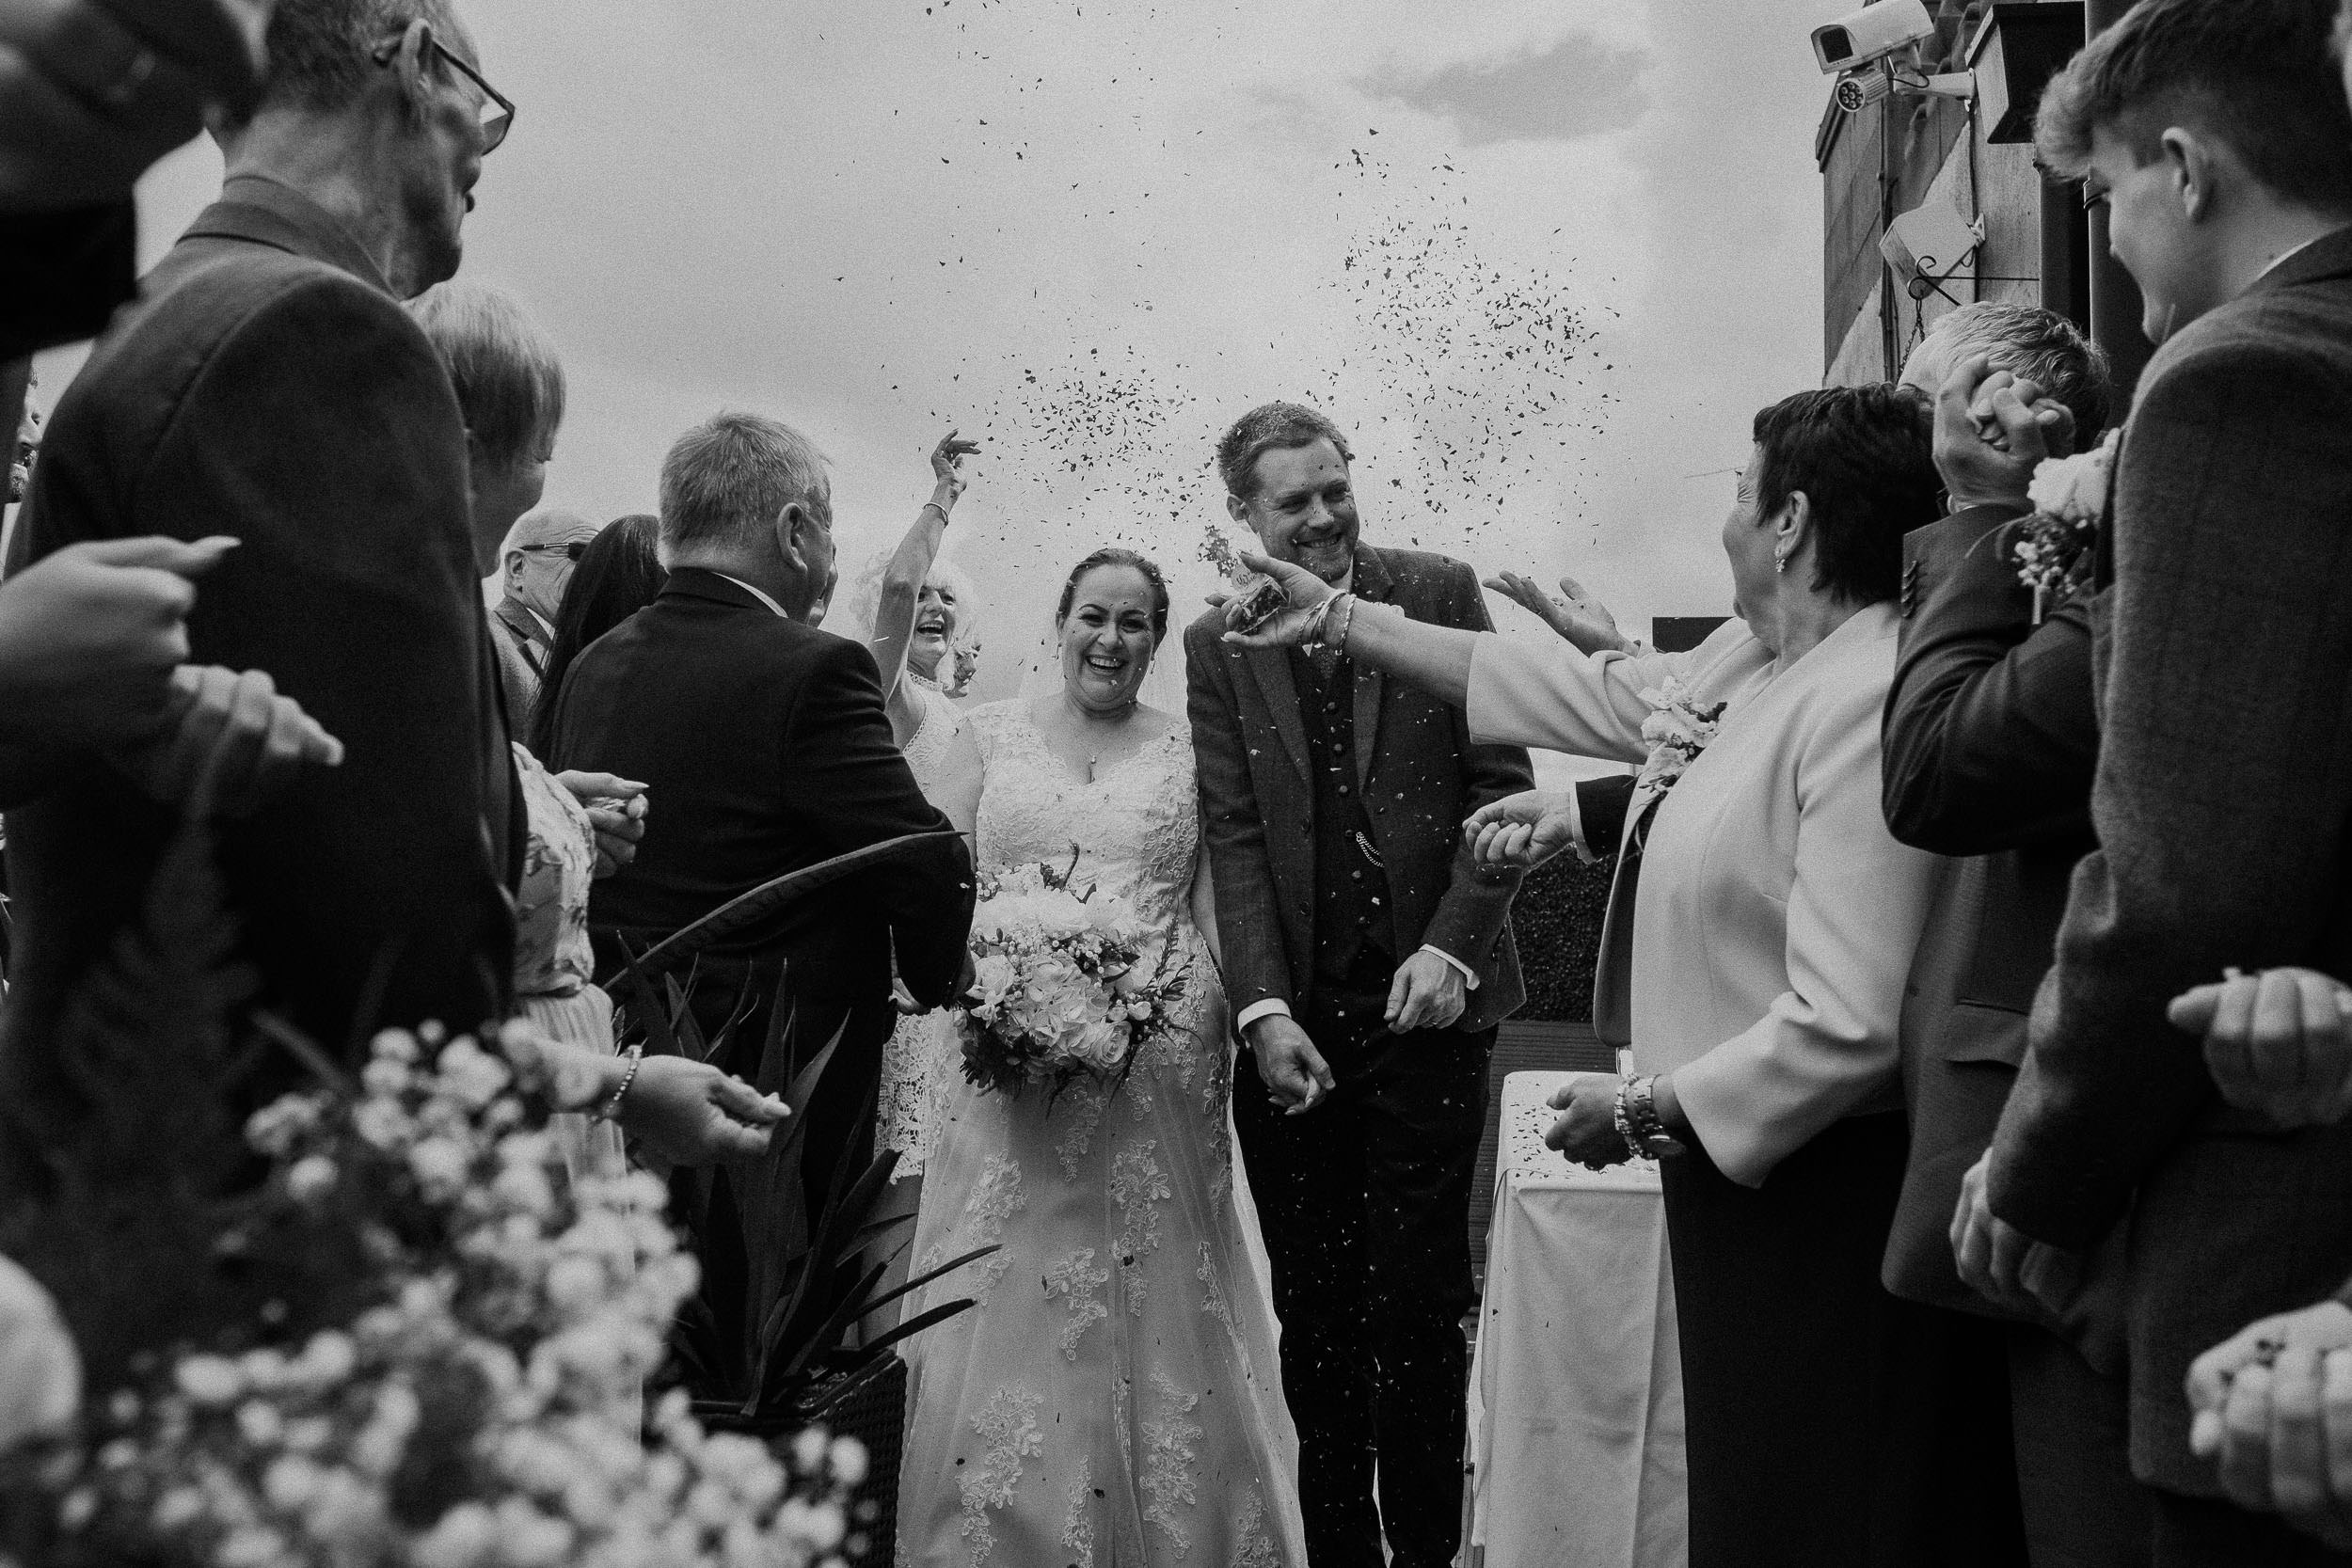 Black and white photo of the bride and groom being showered with confetti